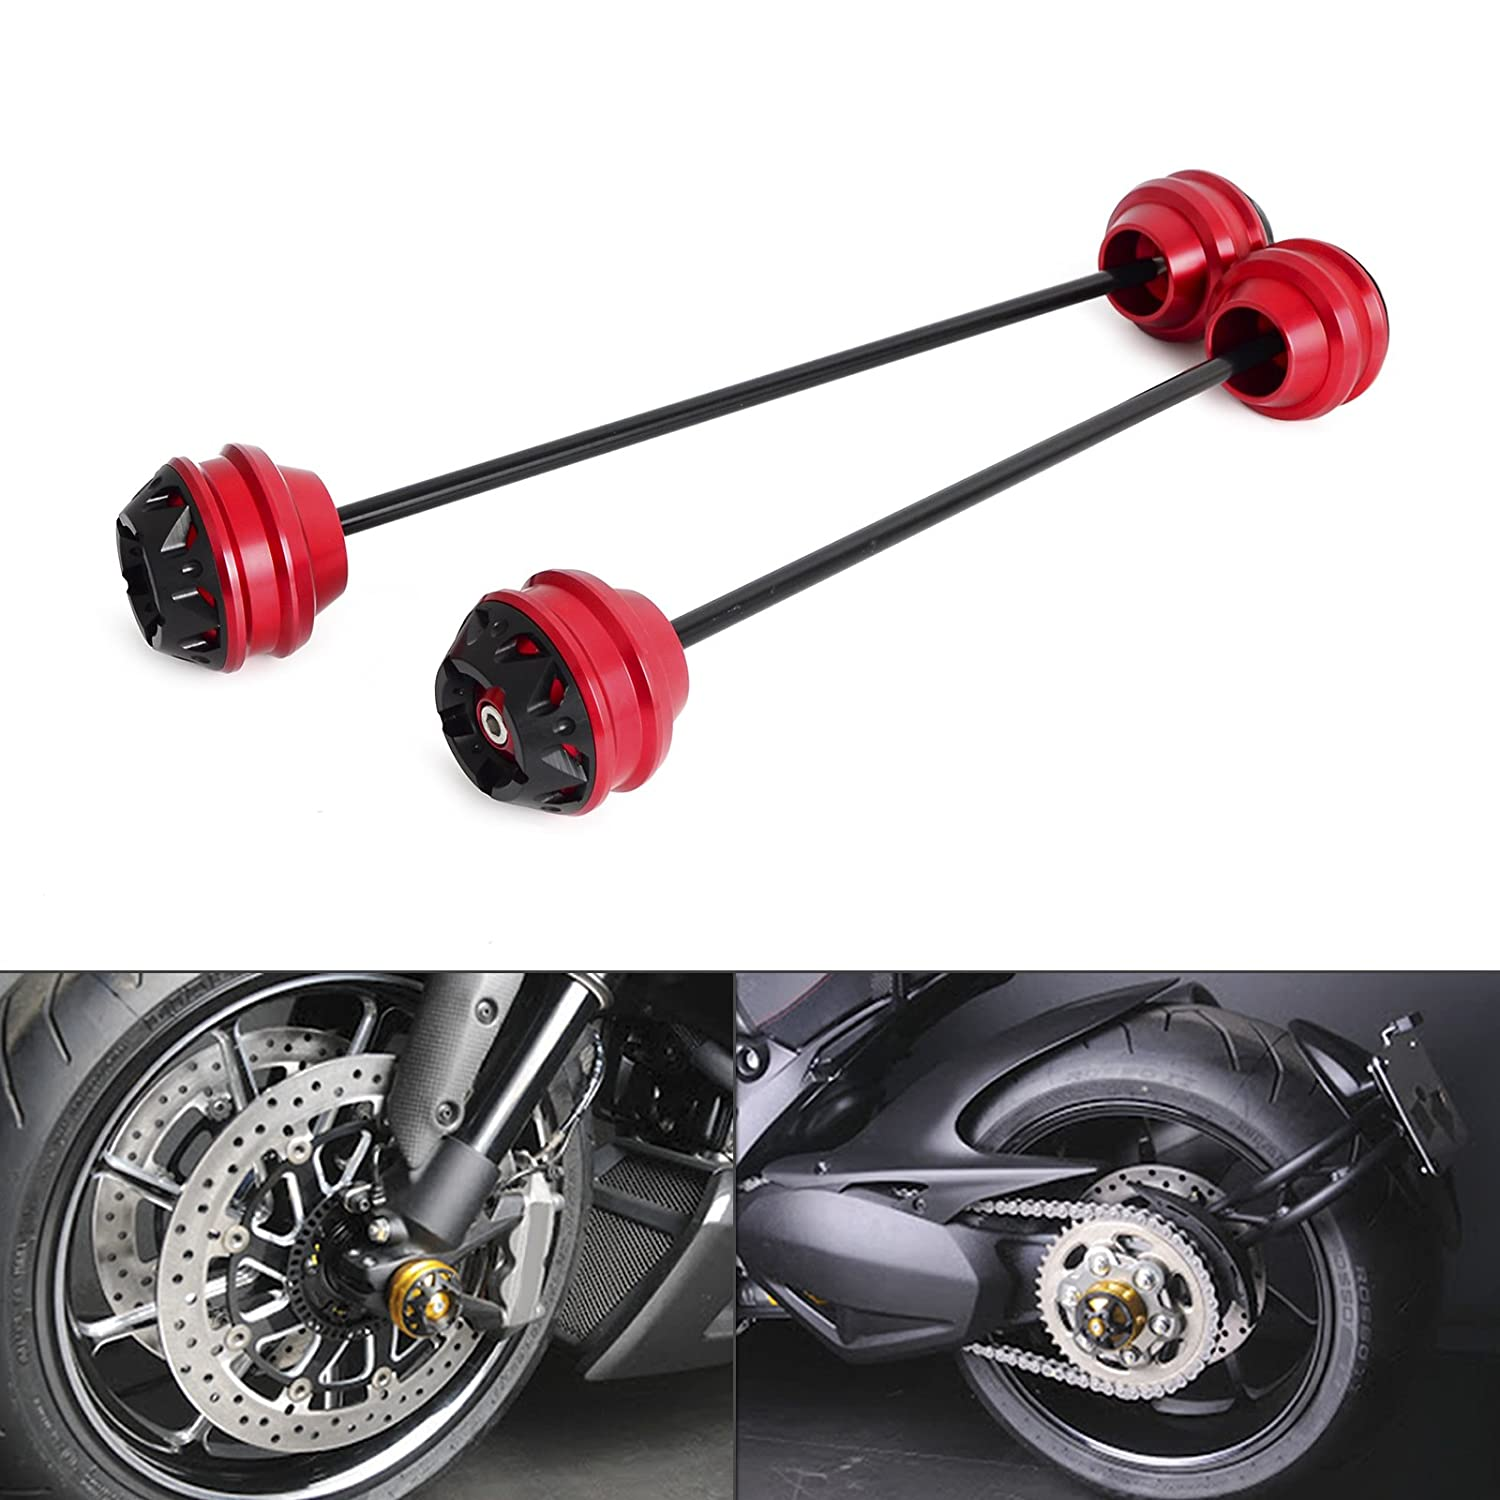 H2RACING Motorcycle Red Front Rear Axle Sliders for Ducati Diavel 2011-2016 Panigale 1199 2013-2015 Superbike 1299 Panigale 2015-2016 Superbike 1299 Panigale S 2015